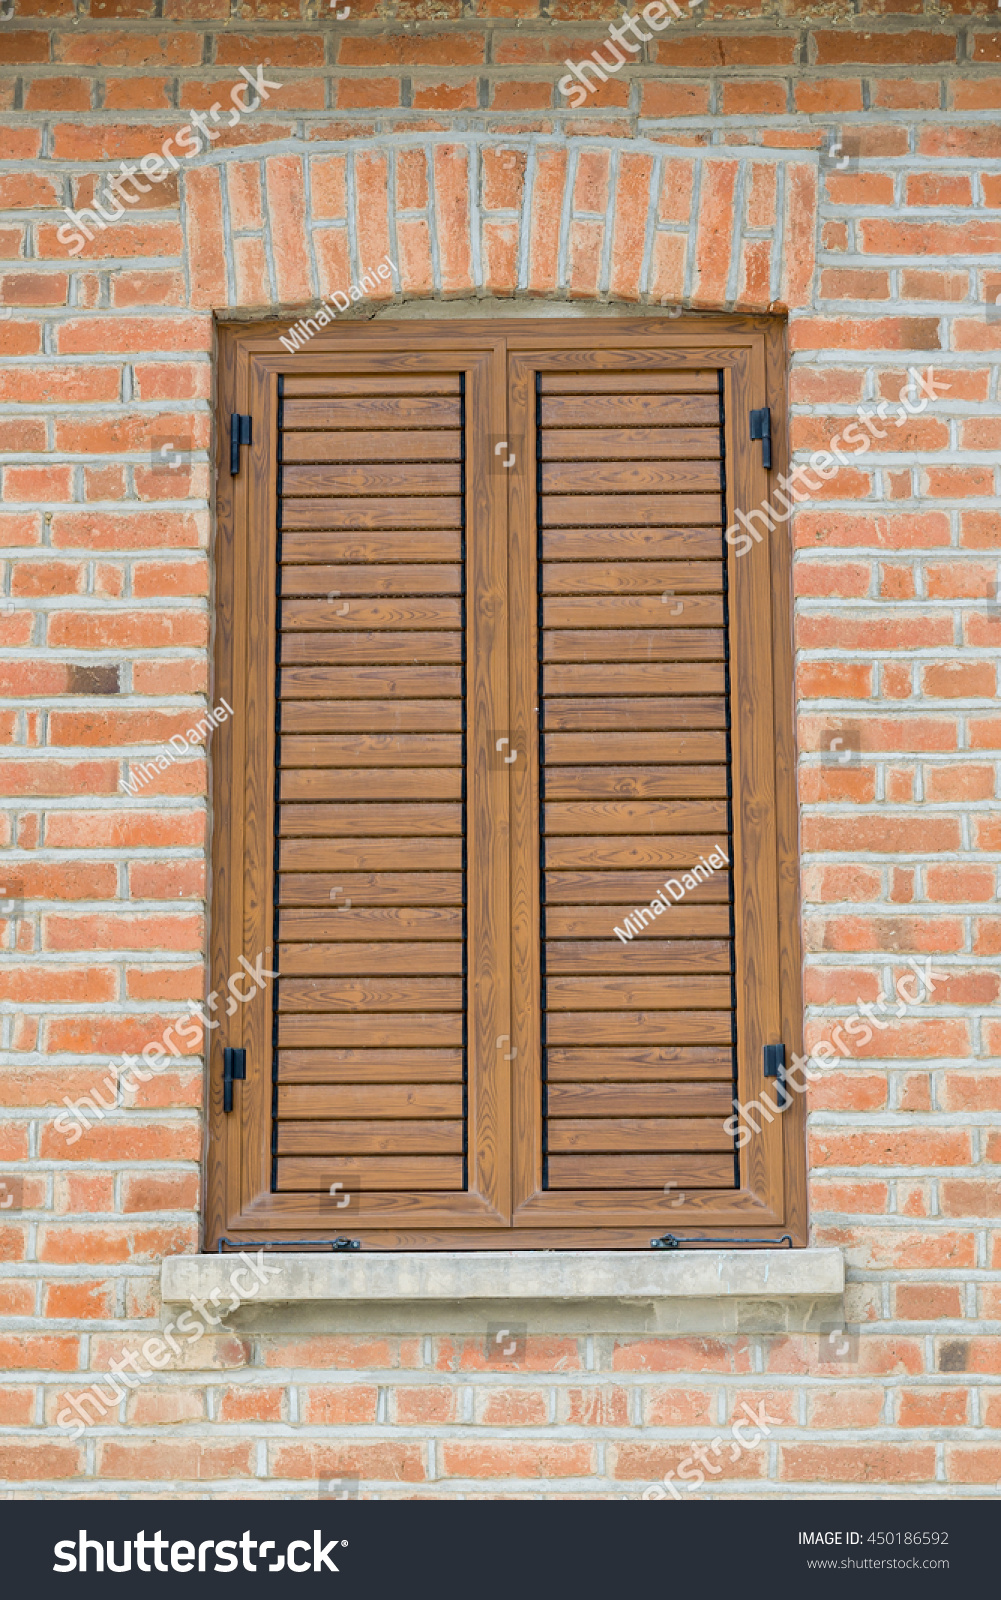 Window Closed With Wooden Exterior Shutters Part 86